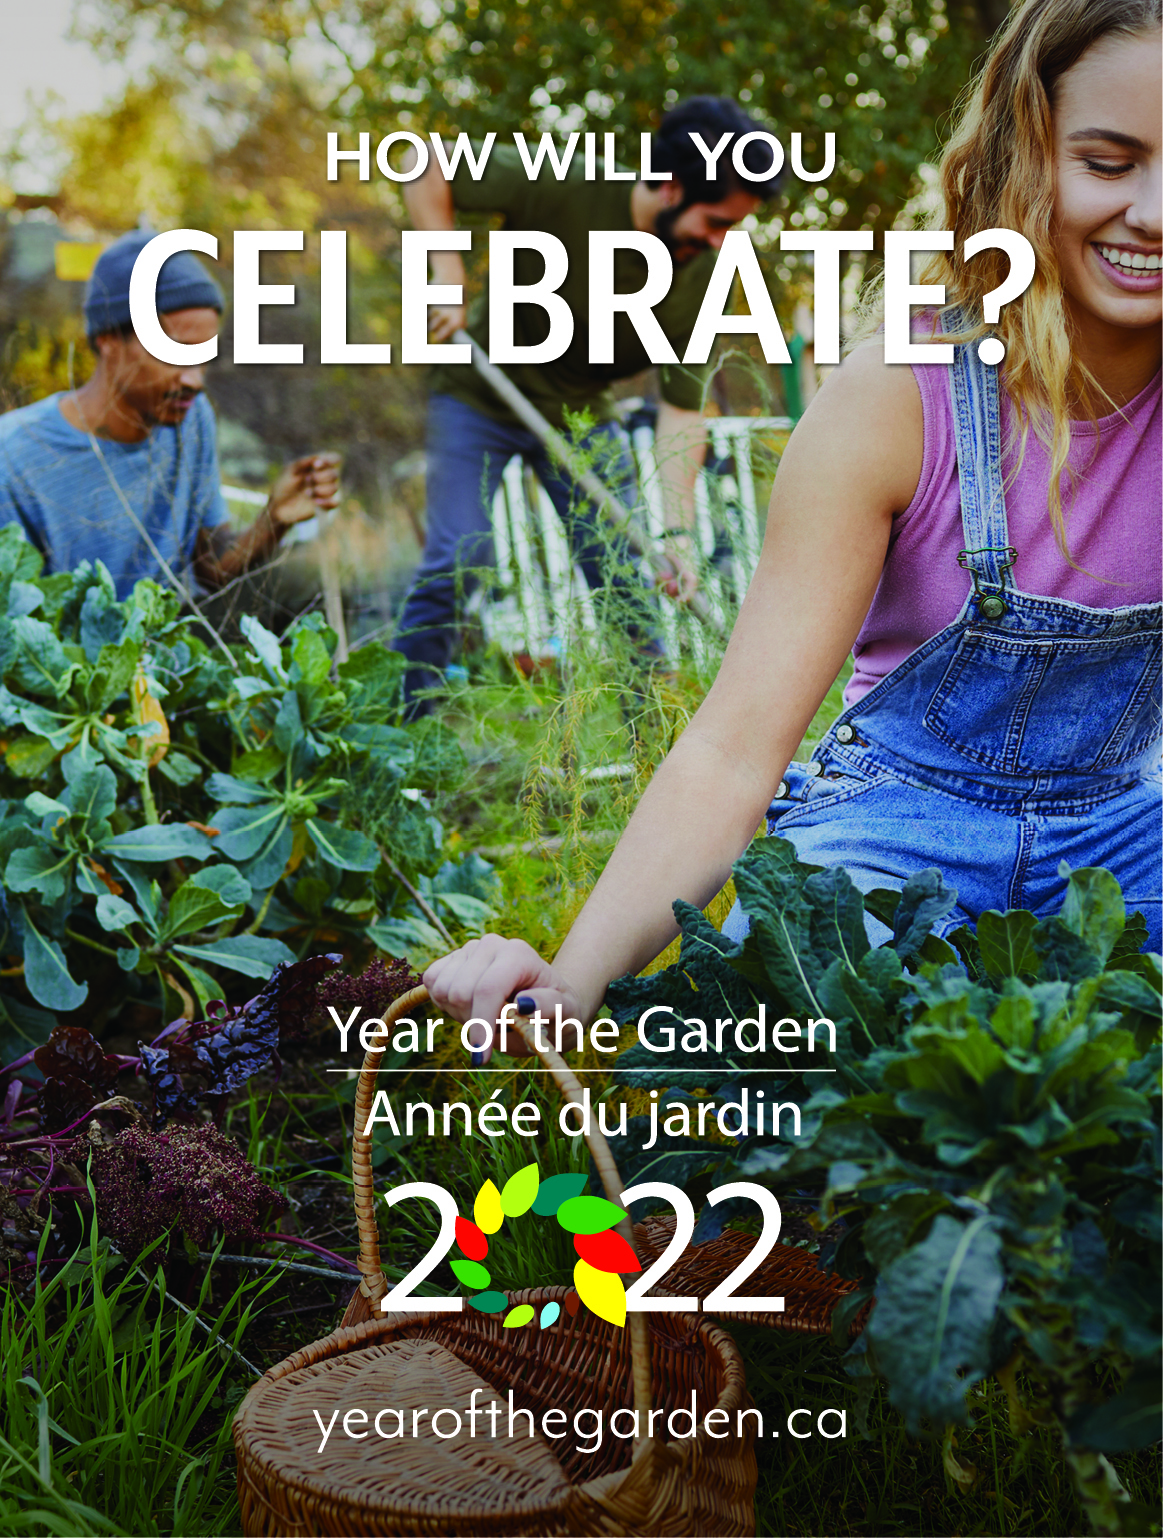 * YEAR OF THE GARDEN 2022 * JOIN THE CELEBRATION!